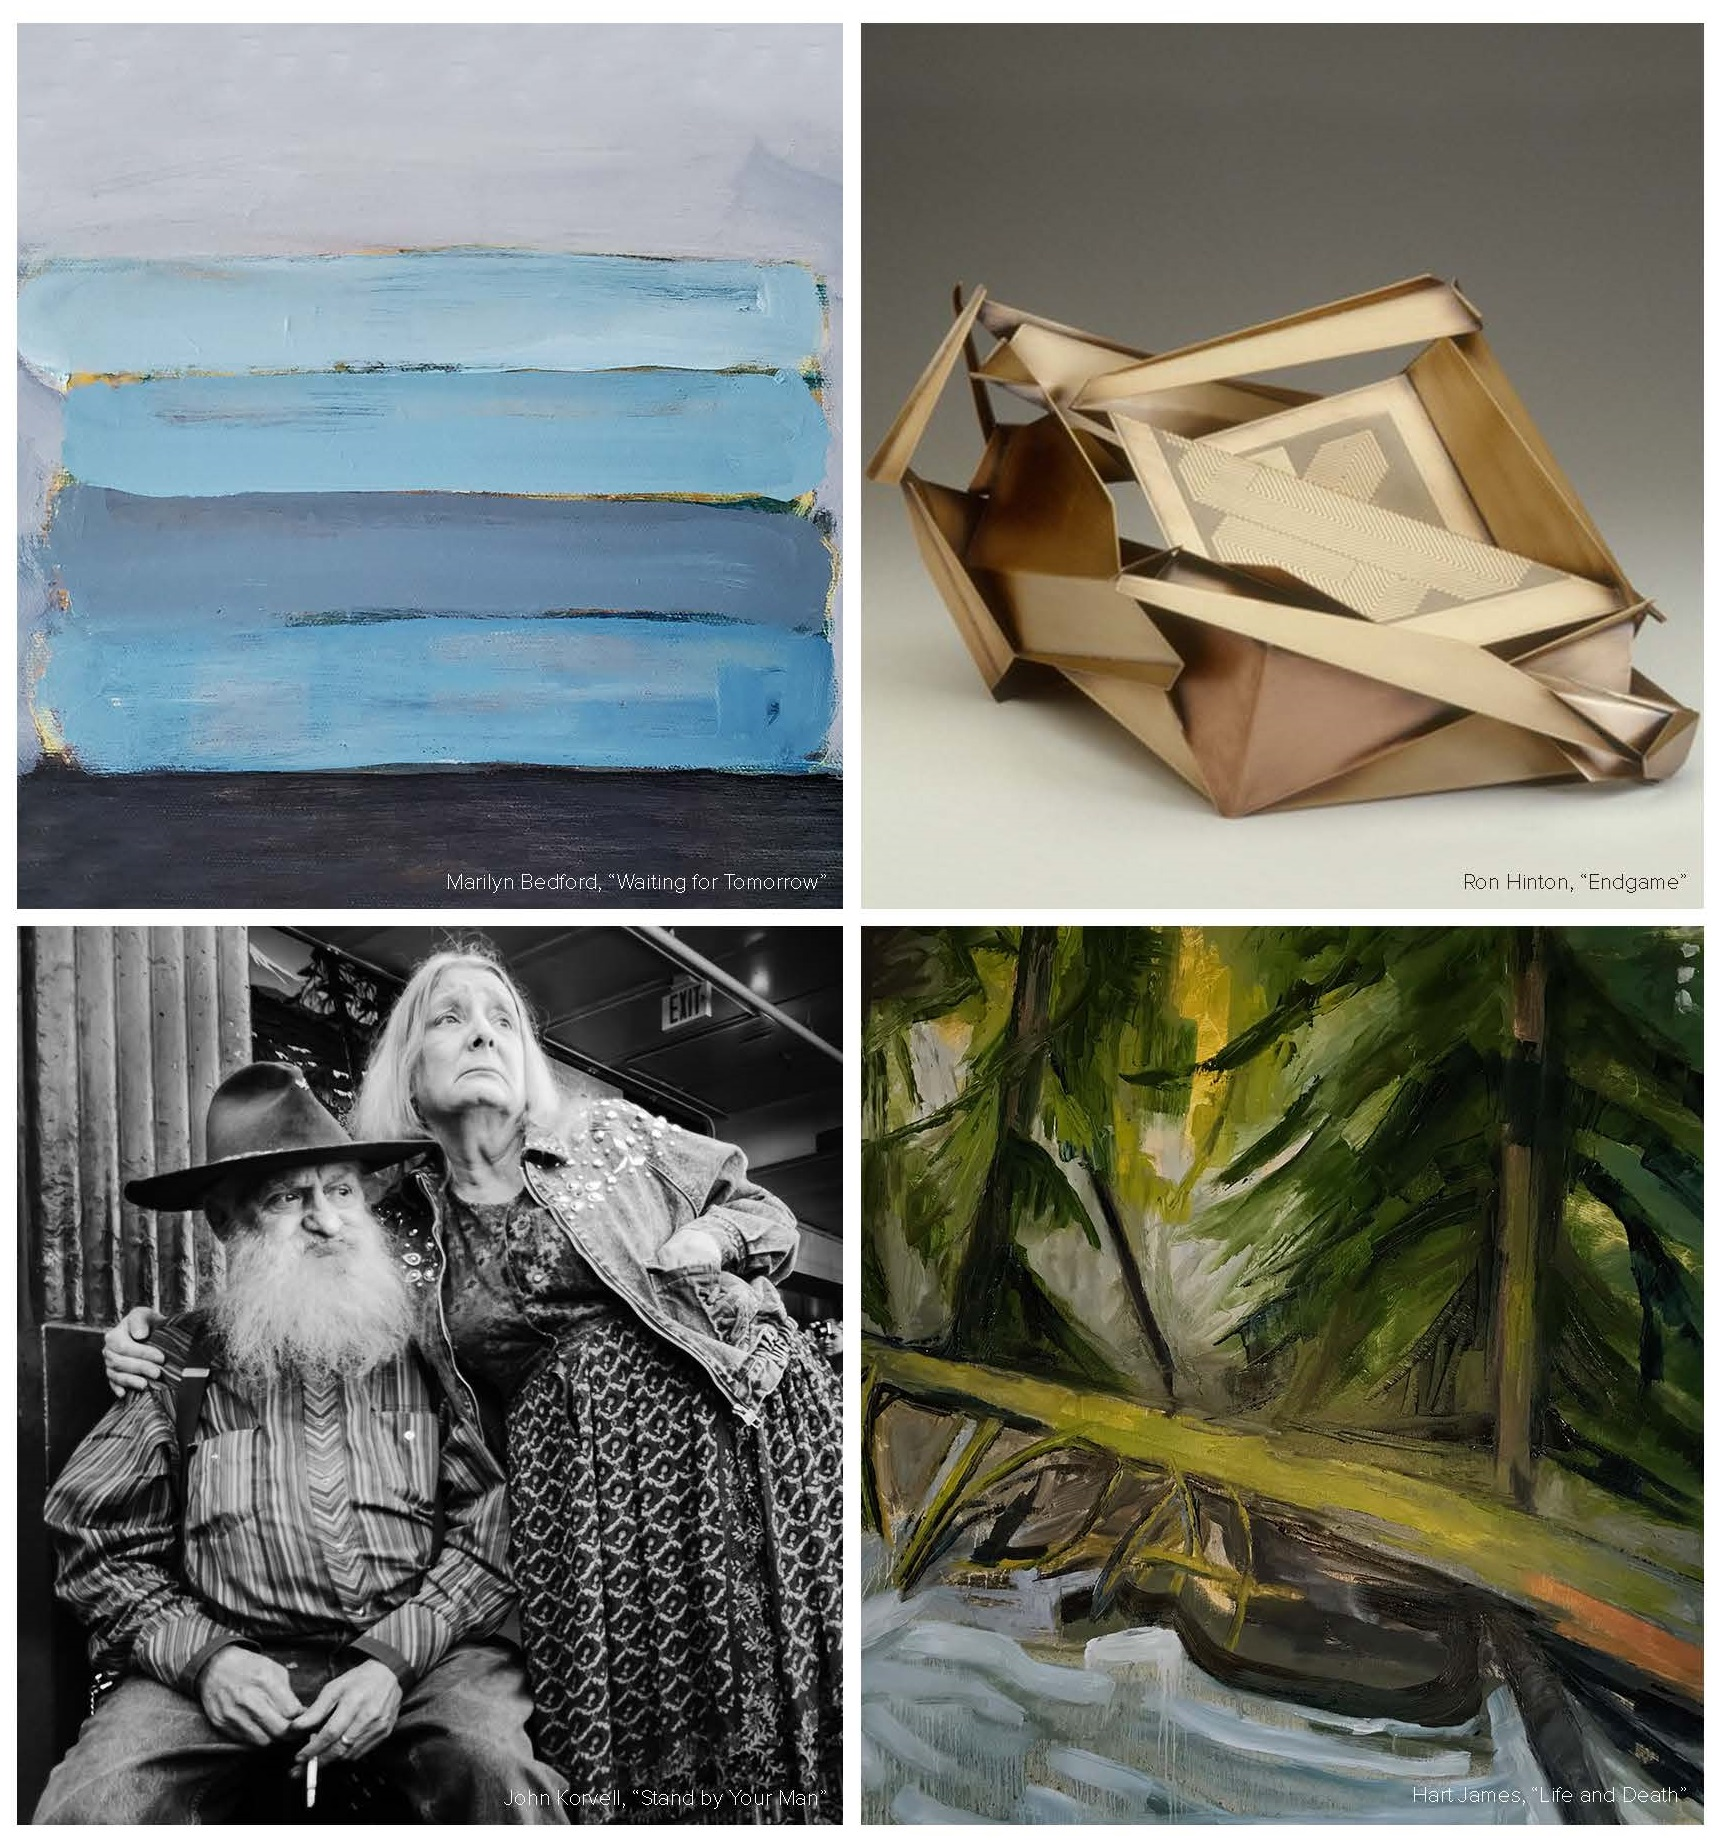 A grid with four images from the artists in the exhibit